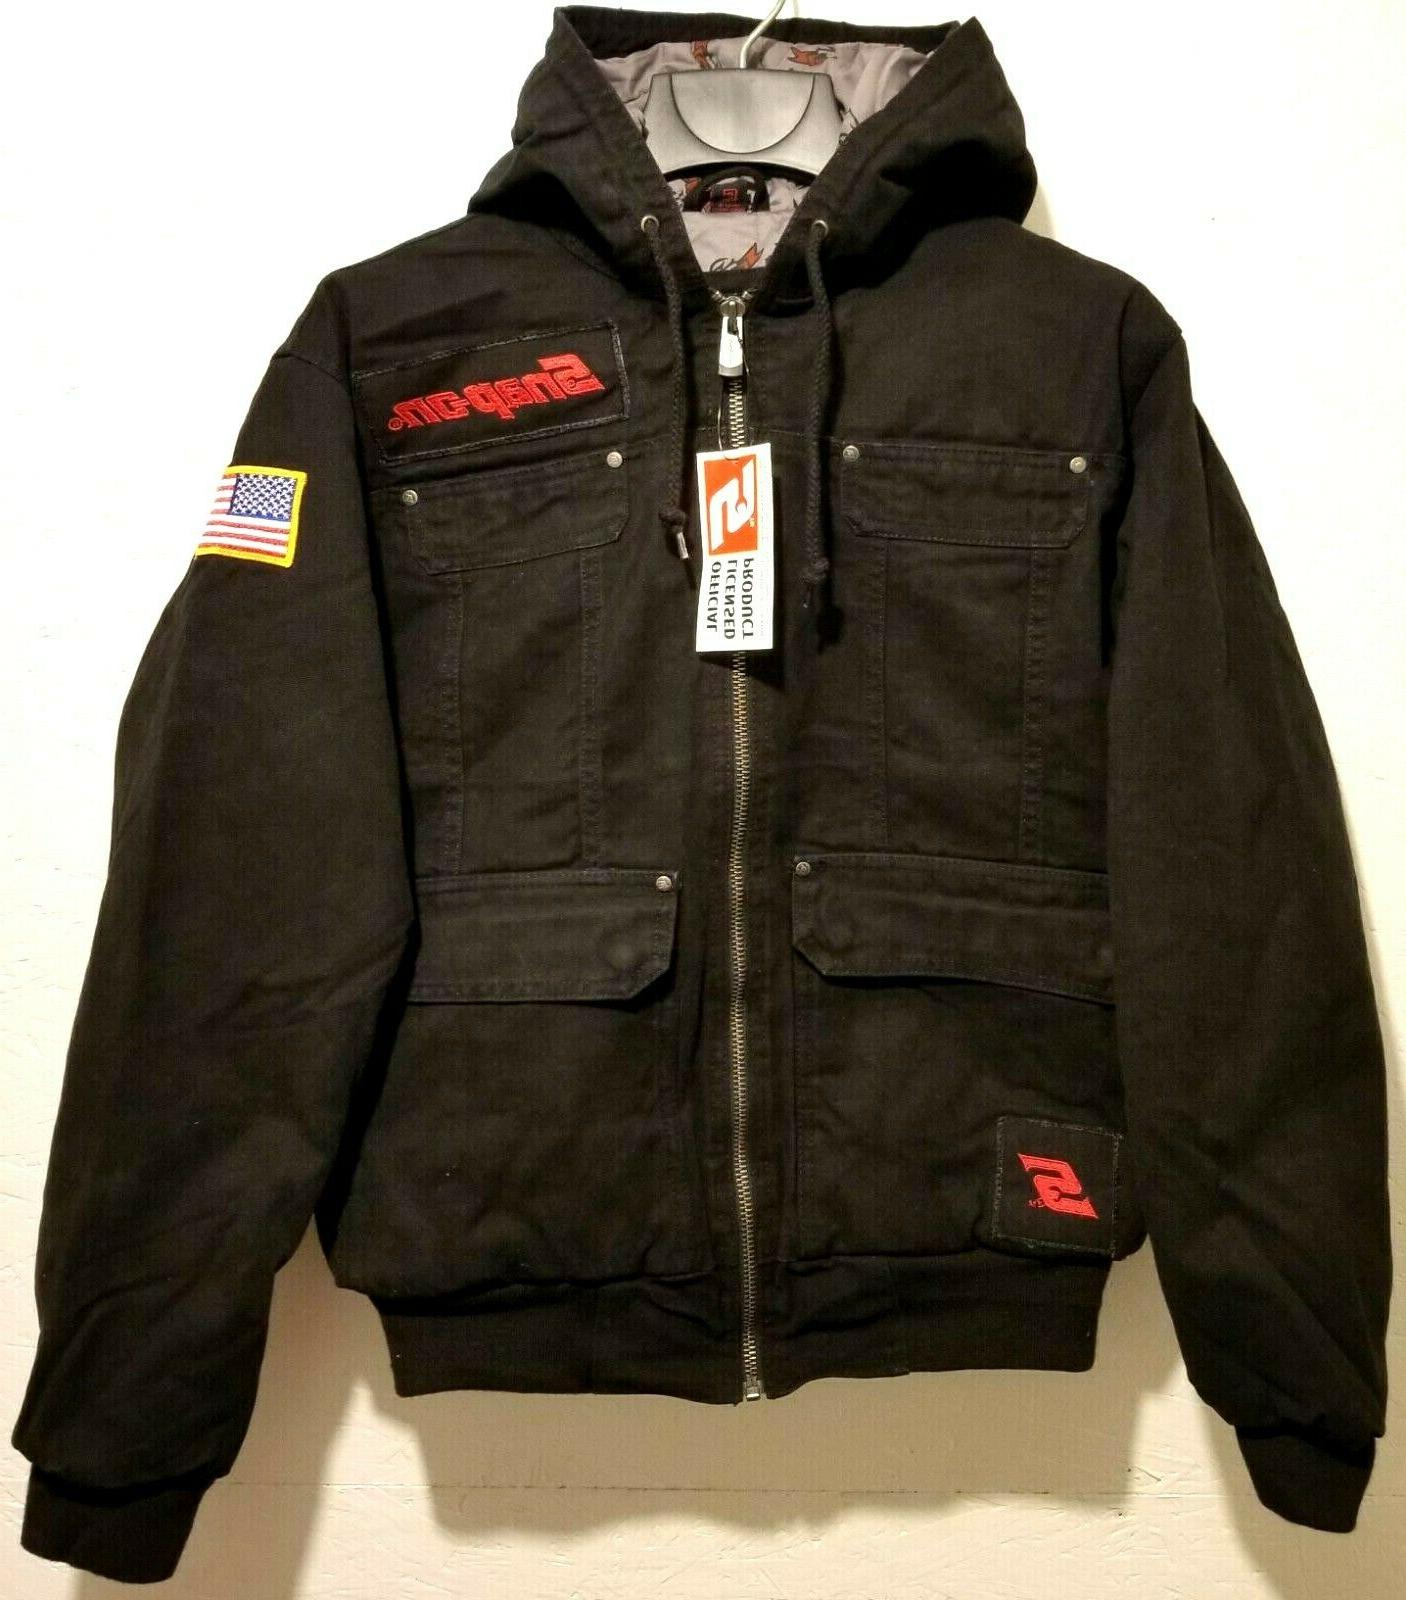 new snap on tools men s hooded